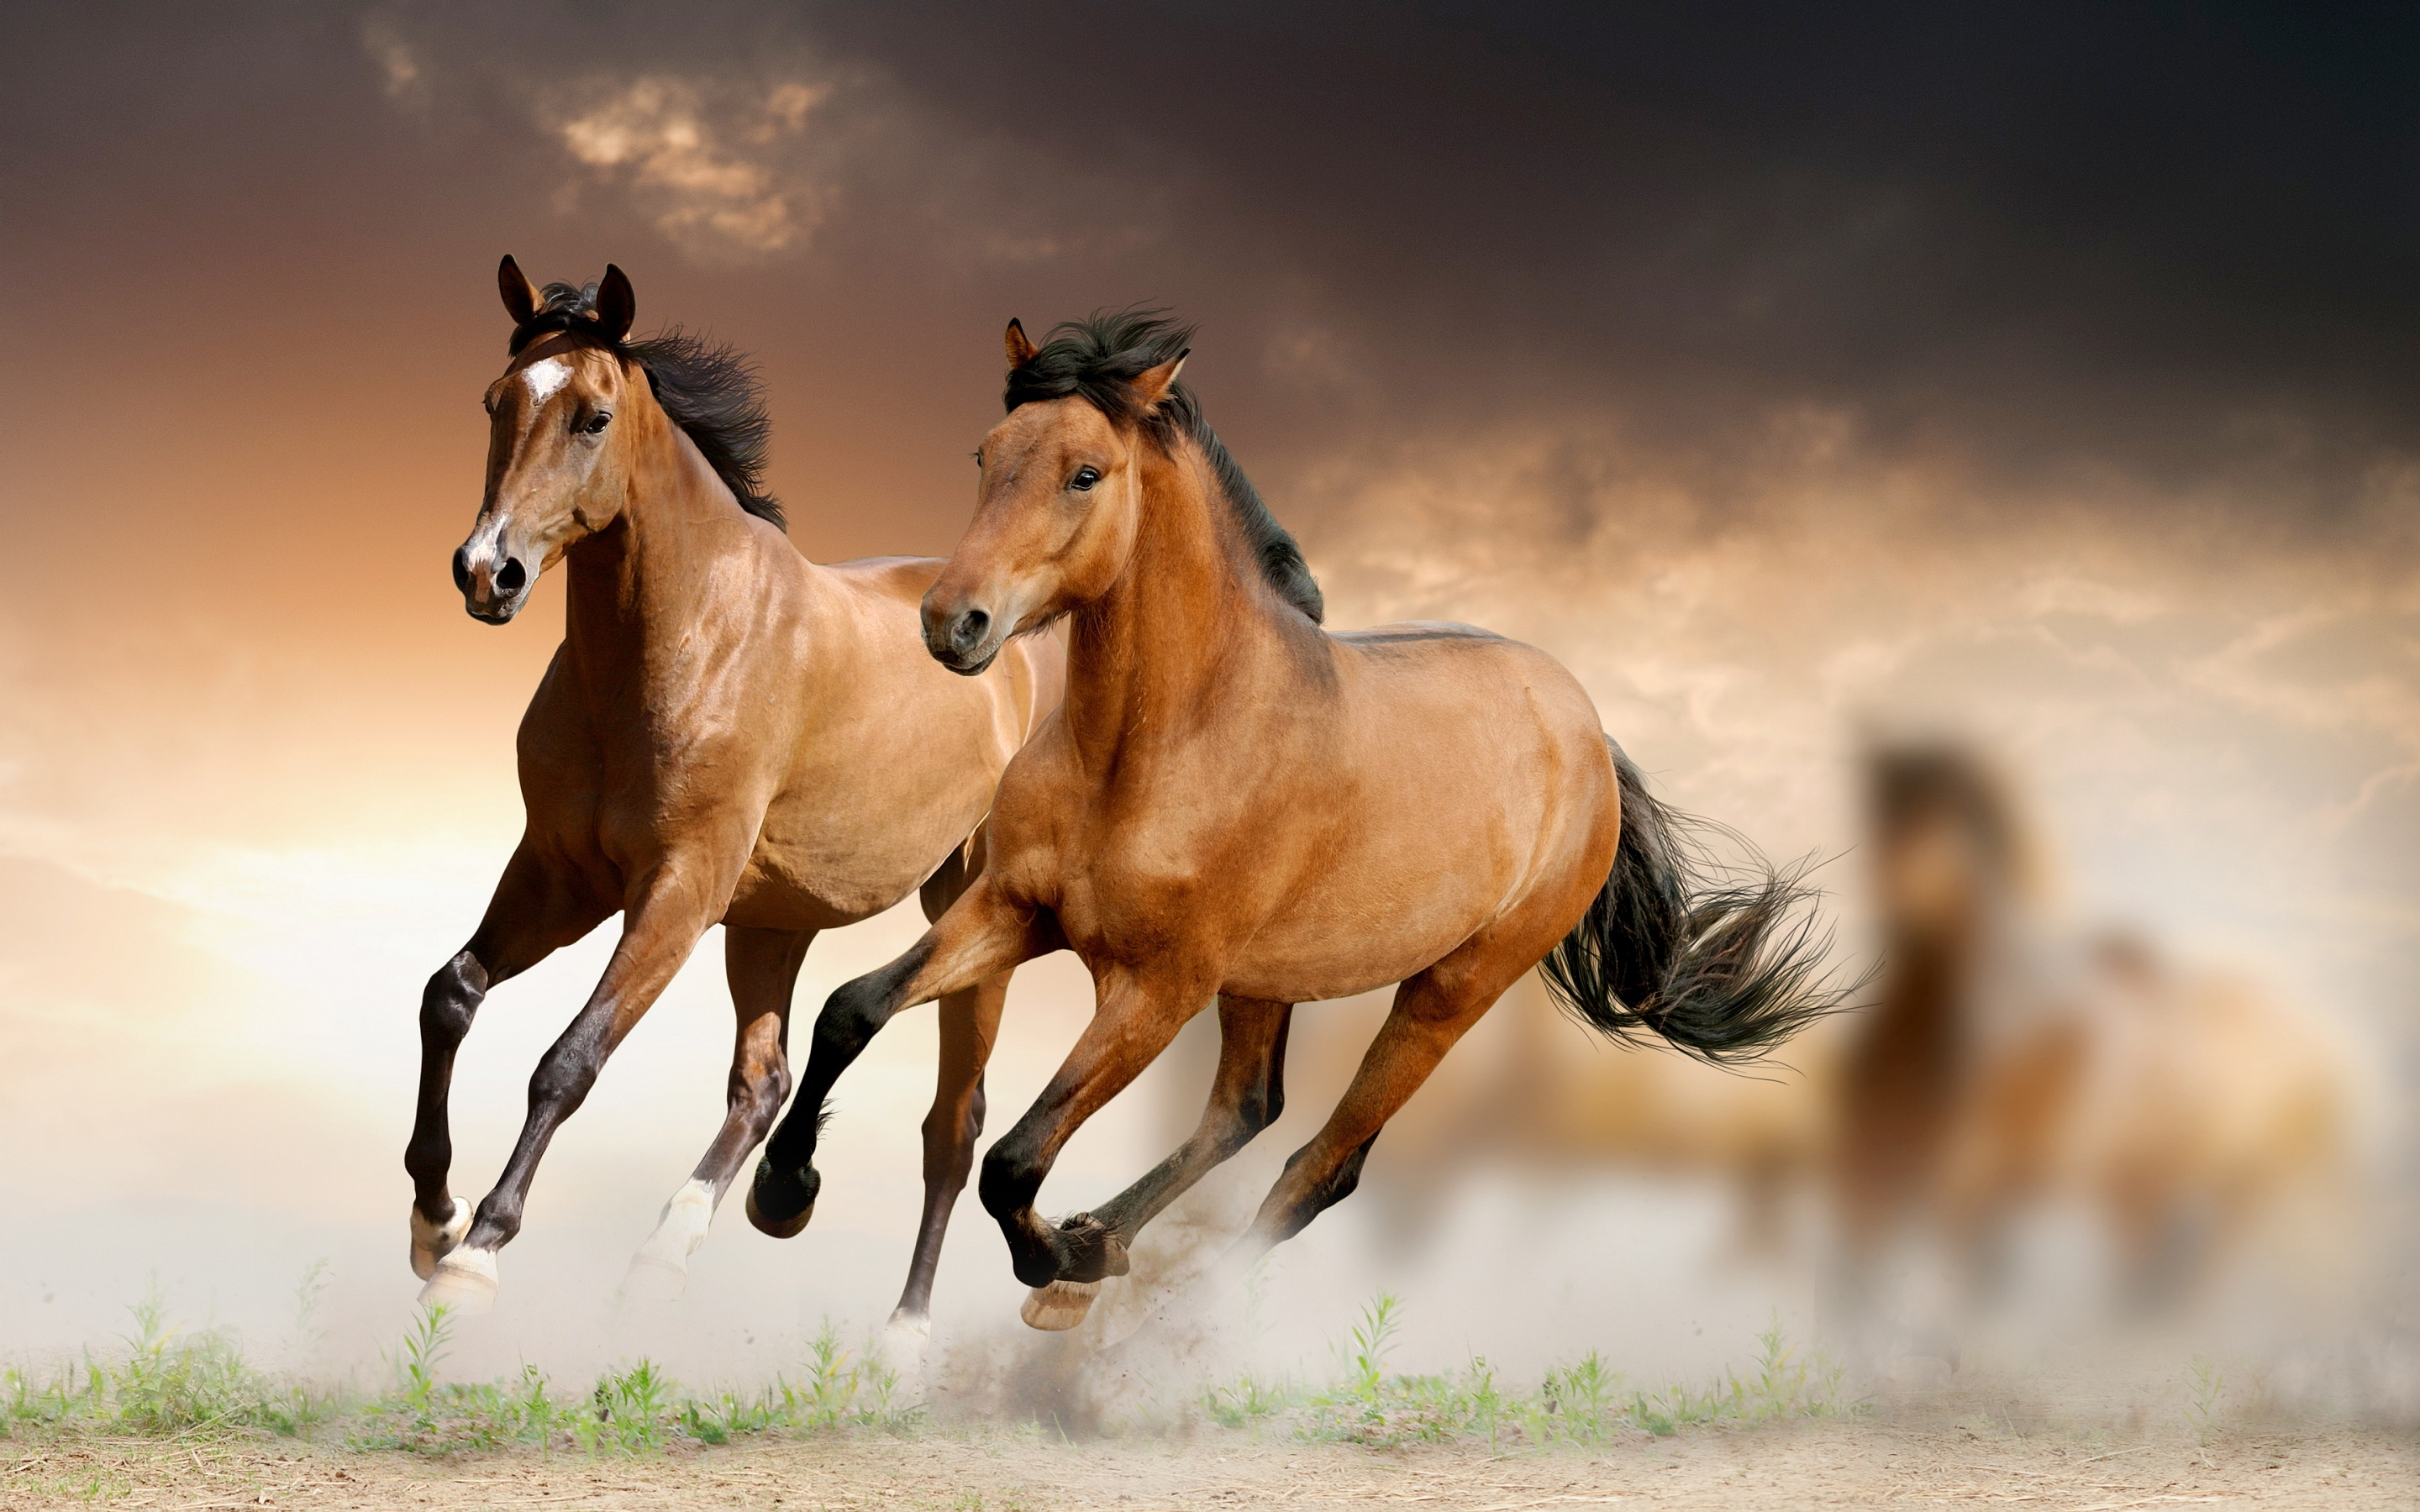 Hd horses wallpaper free download hd horses wallpaper voltagebd Choice Image